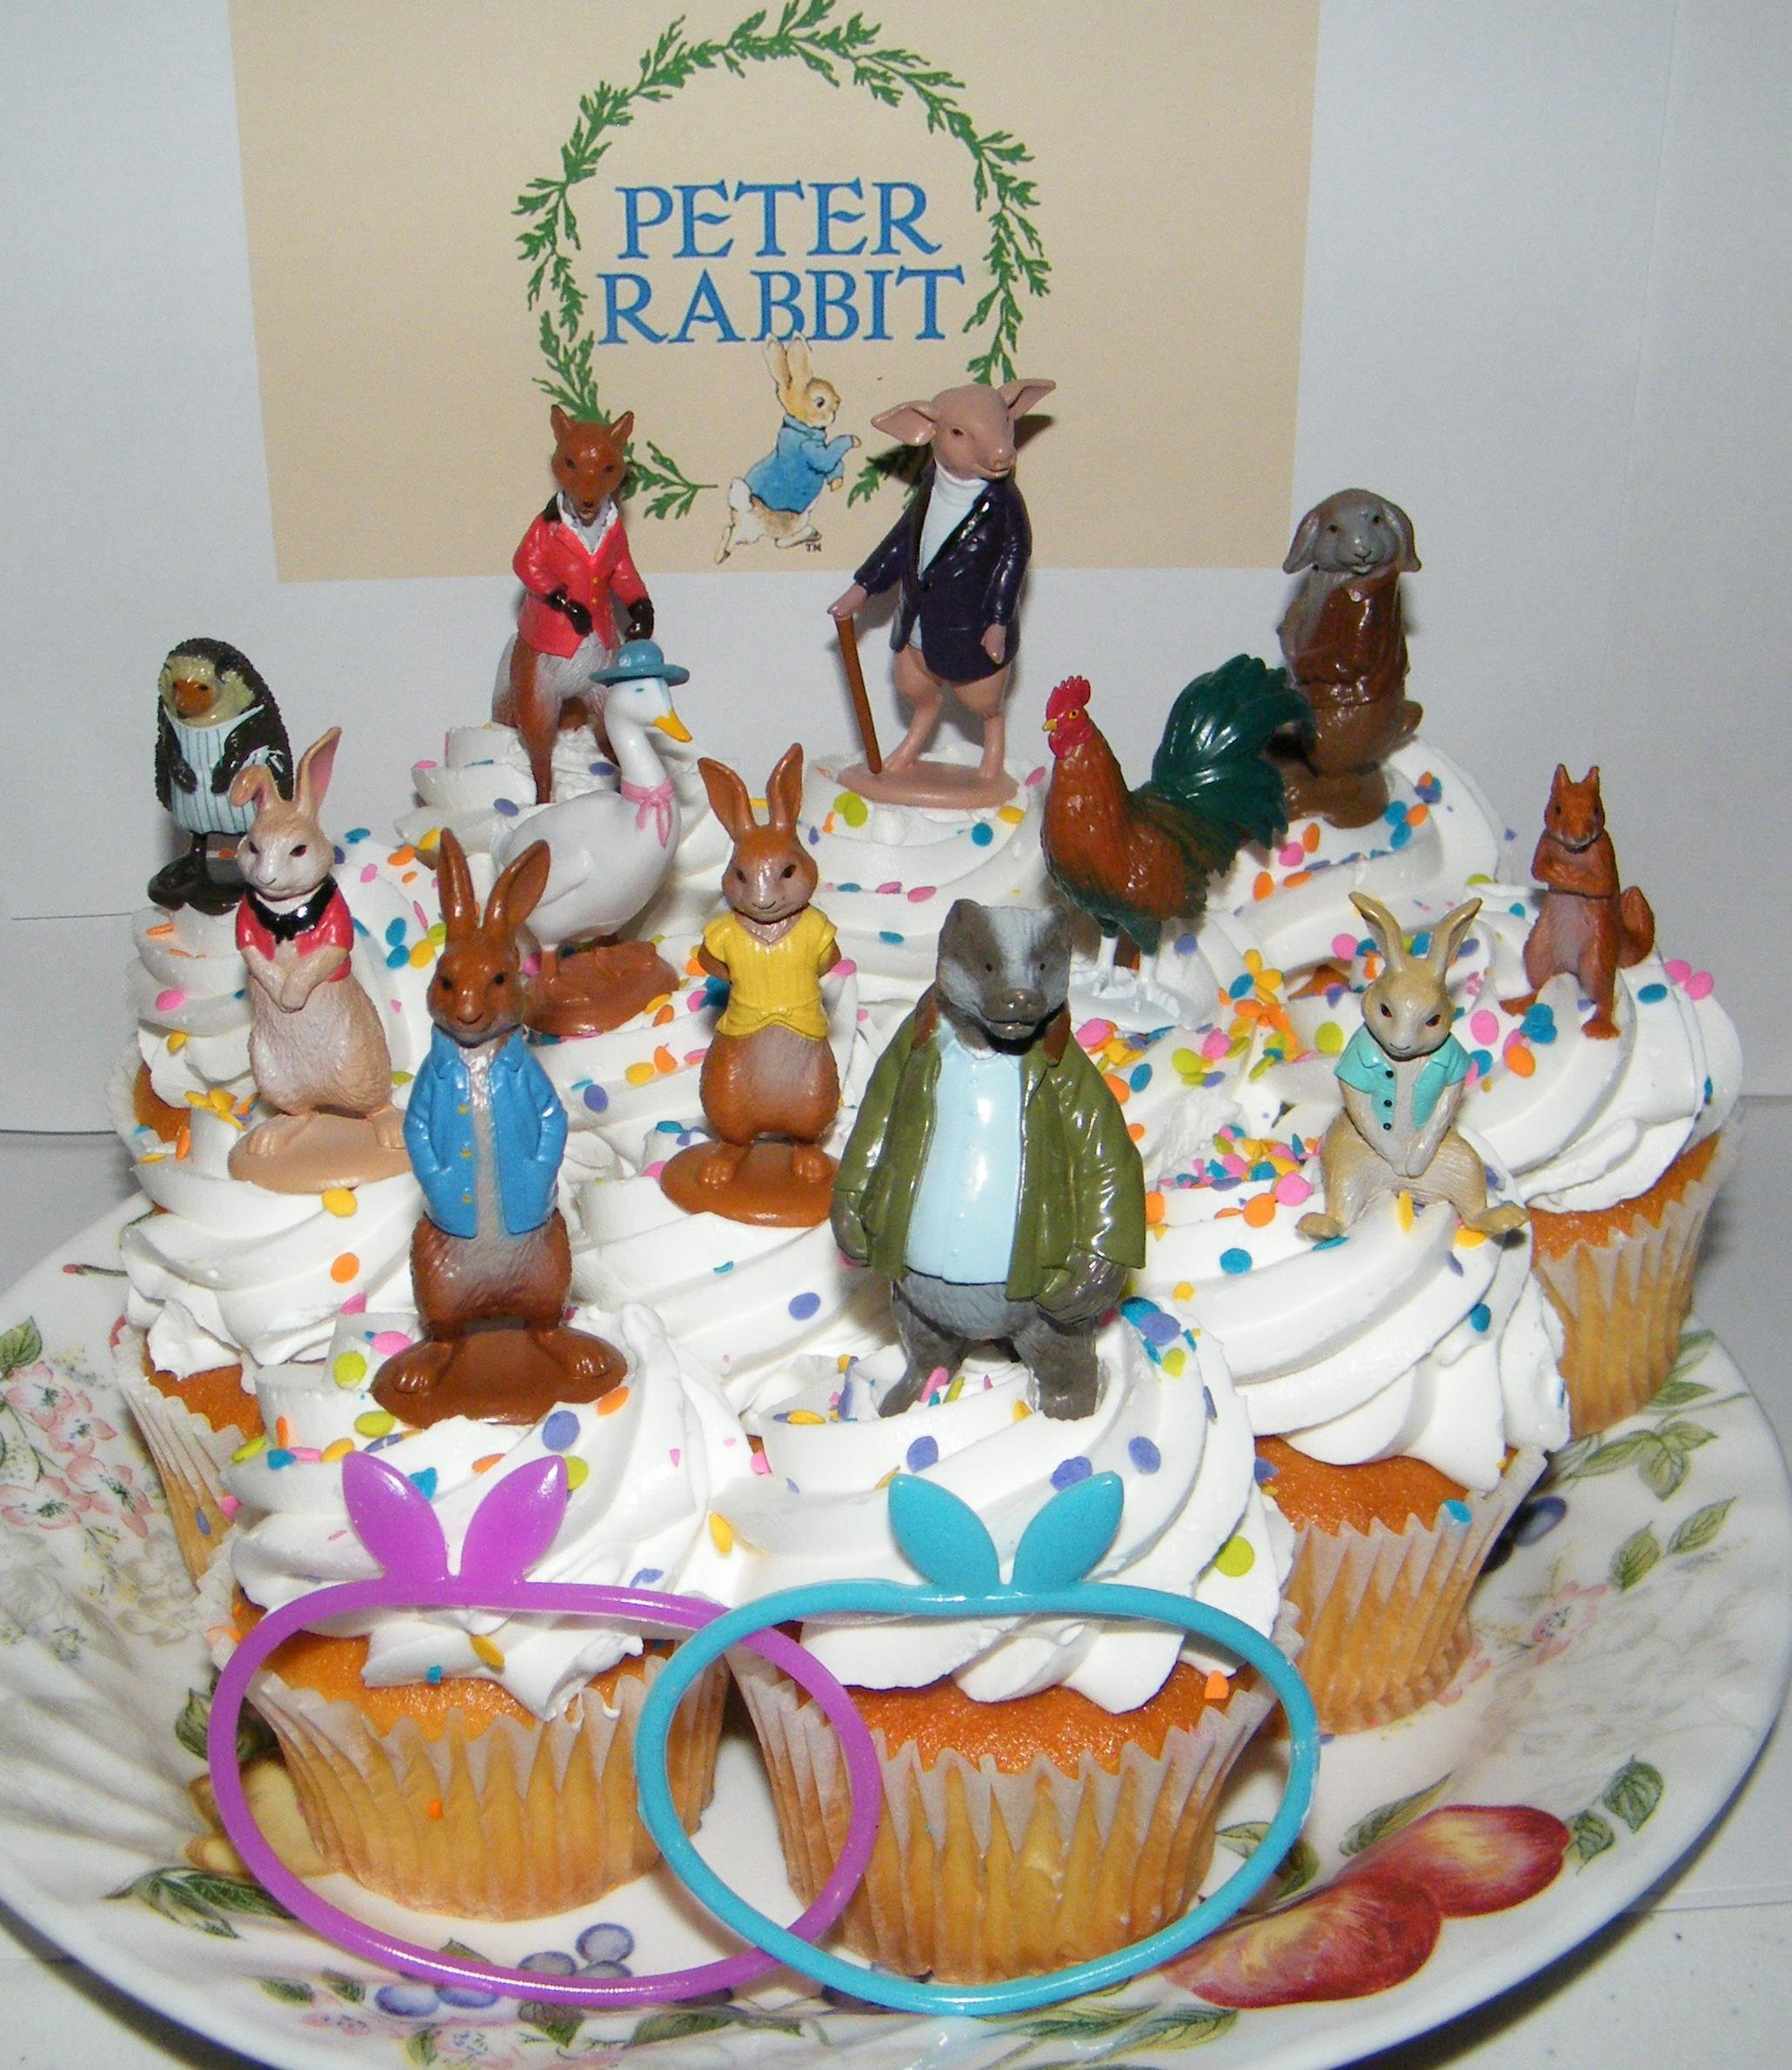 Peter Rabbit Deluxe Cake Toppers Cupcake Decorations Set with Figures and Toy BunnyBracelets featuring all the Popular Peter Rabbit Characters! by Famous Books